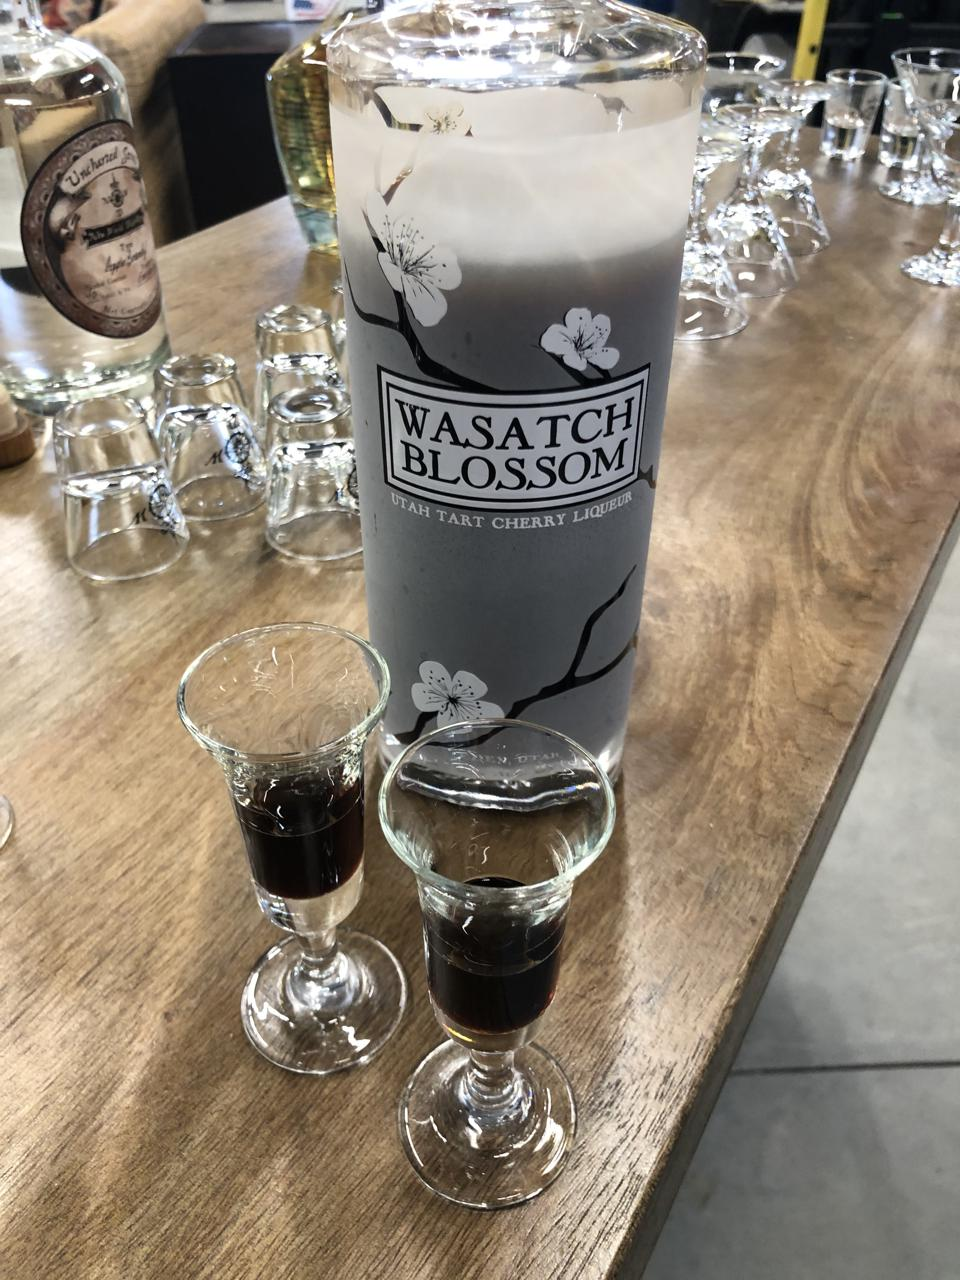 Wasatch Blossom Utah Tart Cherry Liqueur from New World Distillery